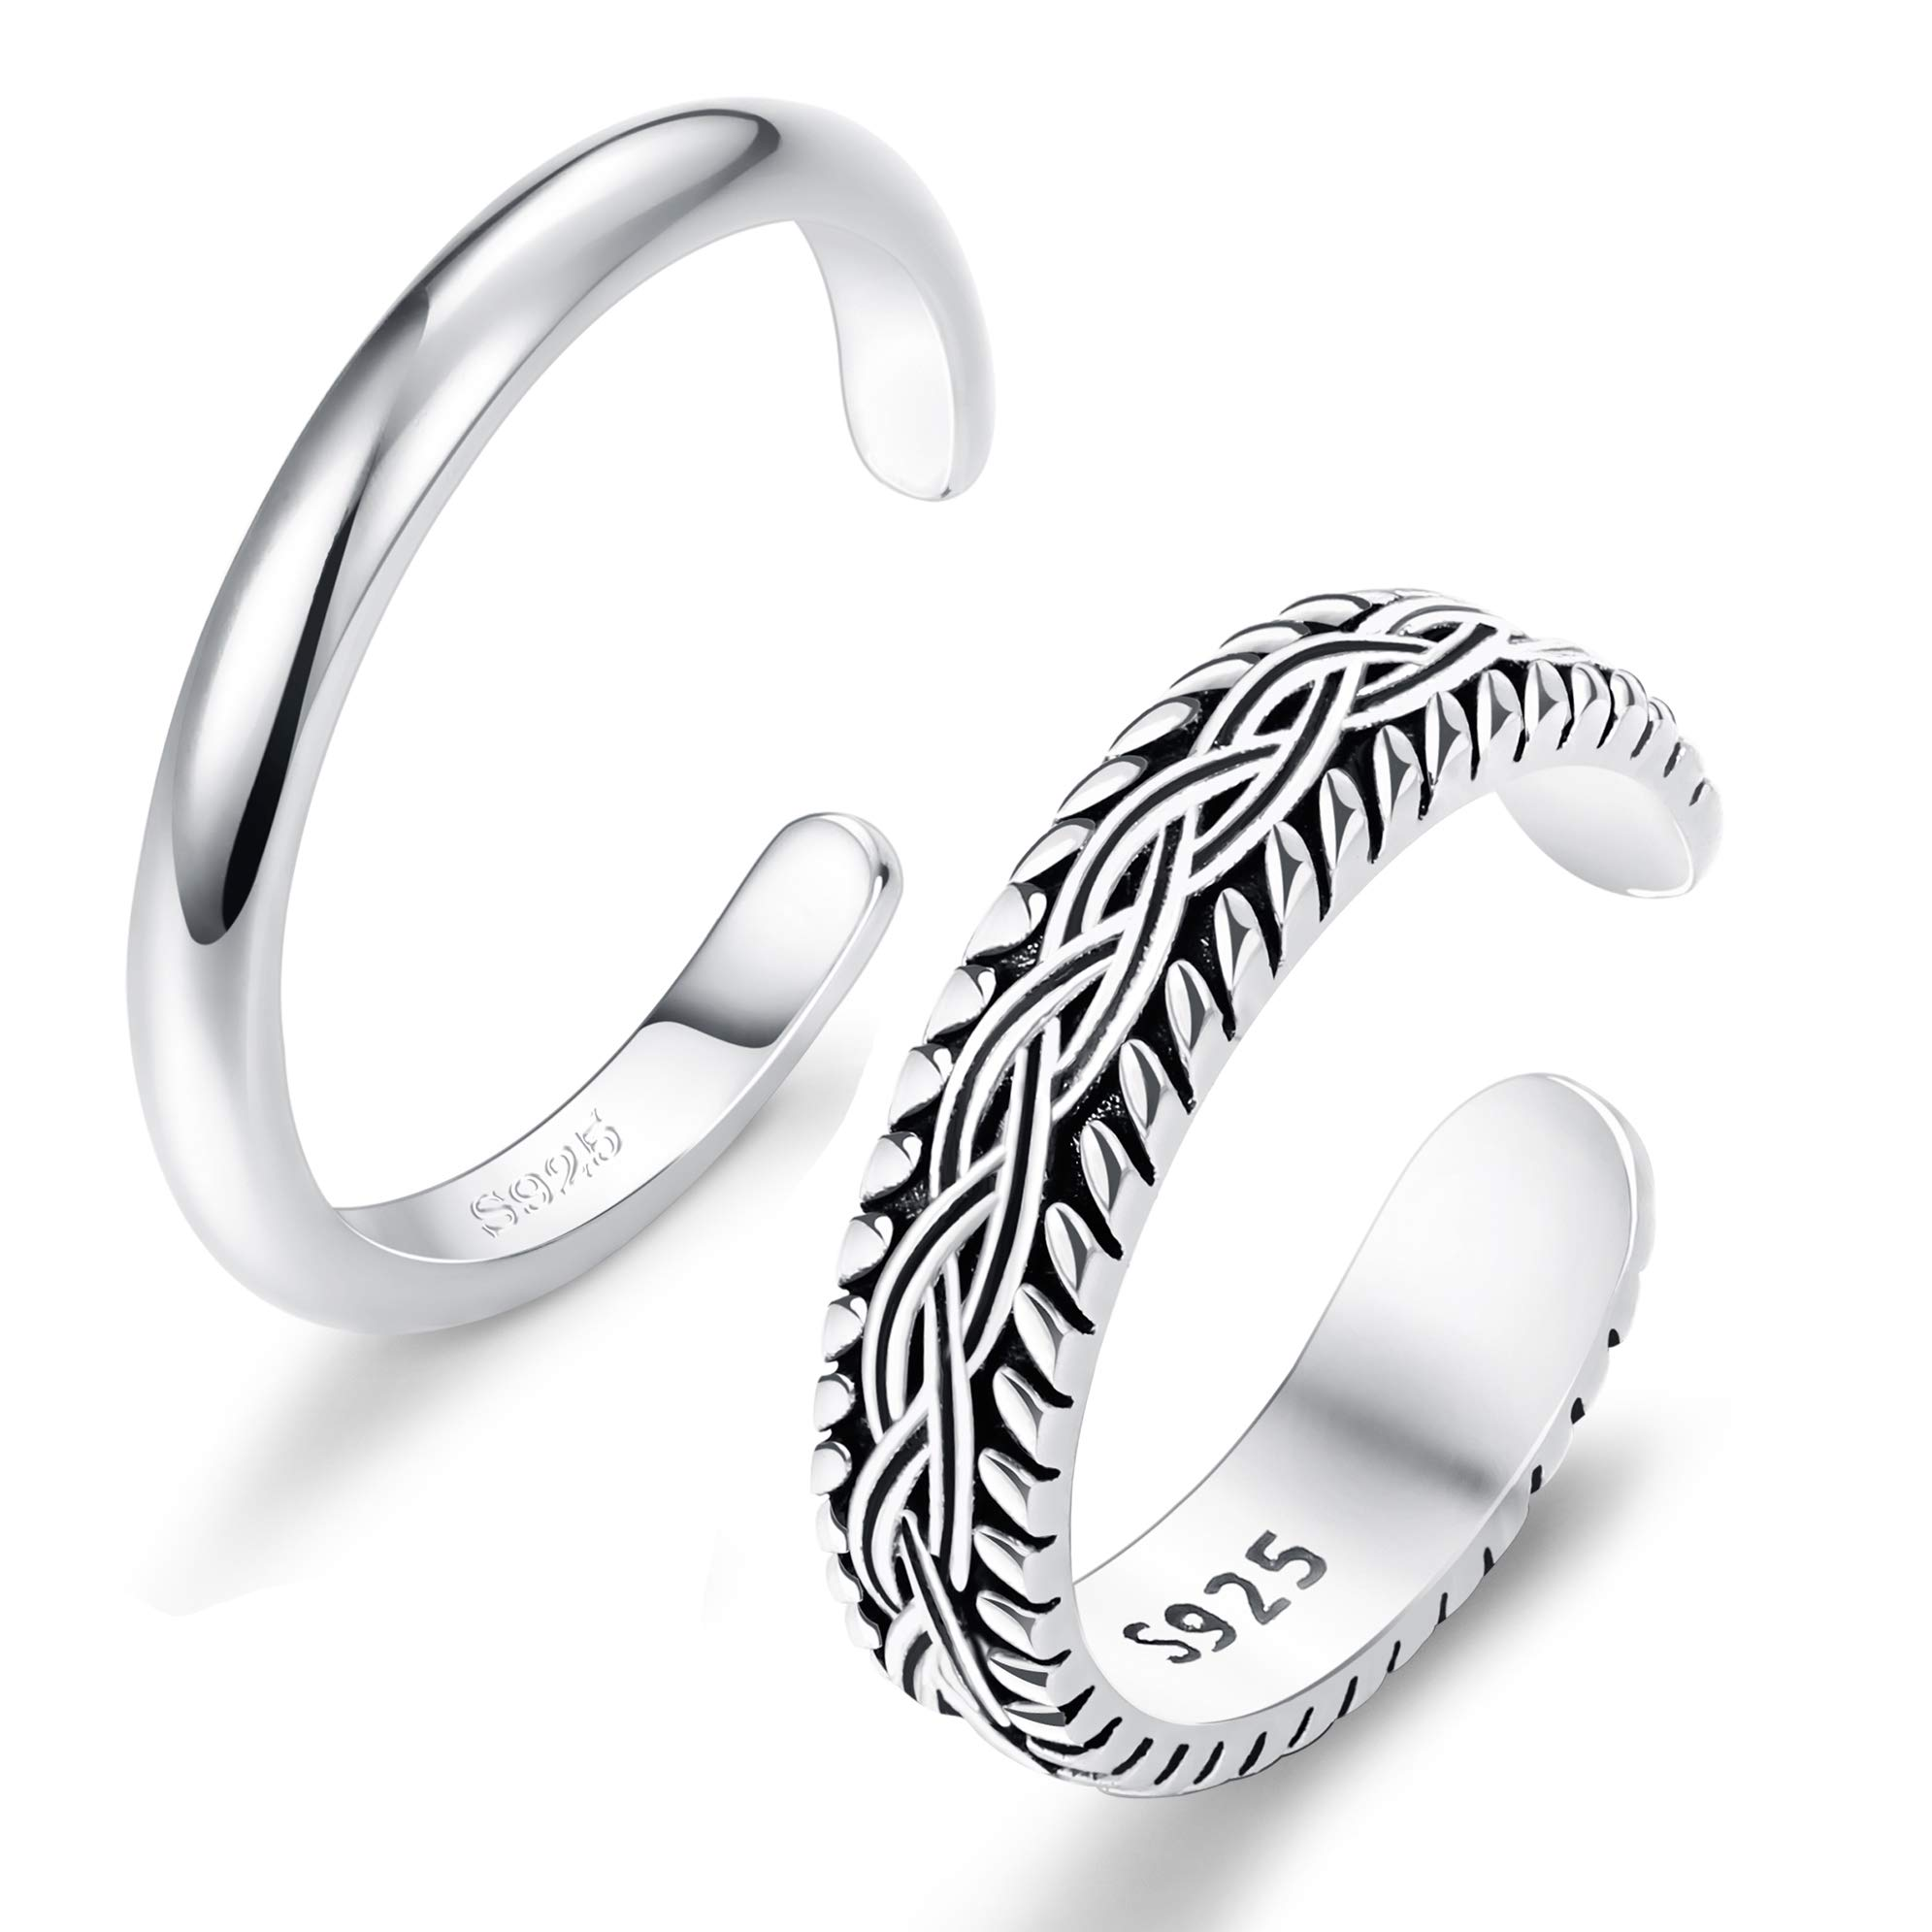 FUNRUN JEWELRY 2 PCS Sterling Silver Toe Ring for Women Girls Retro Vintage Design Adjustable Ring Set (A:Platinum Plated) by FUNRUN JEWELRY